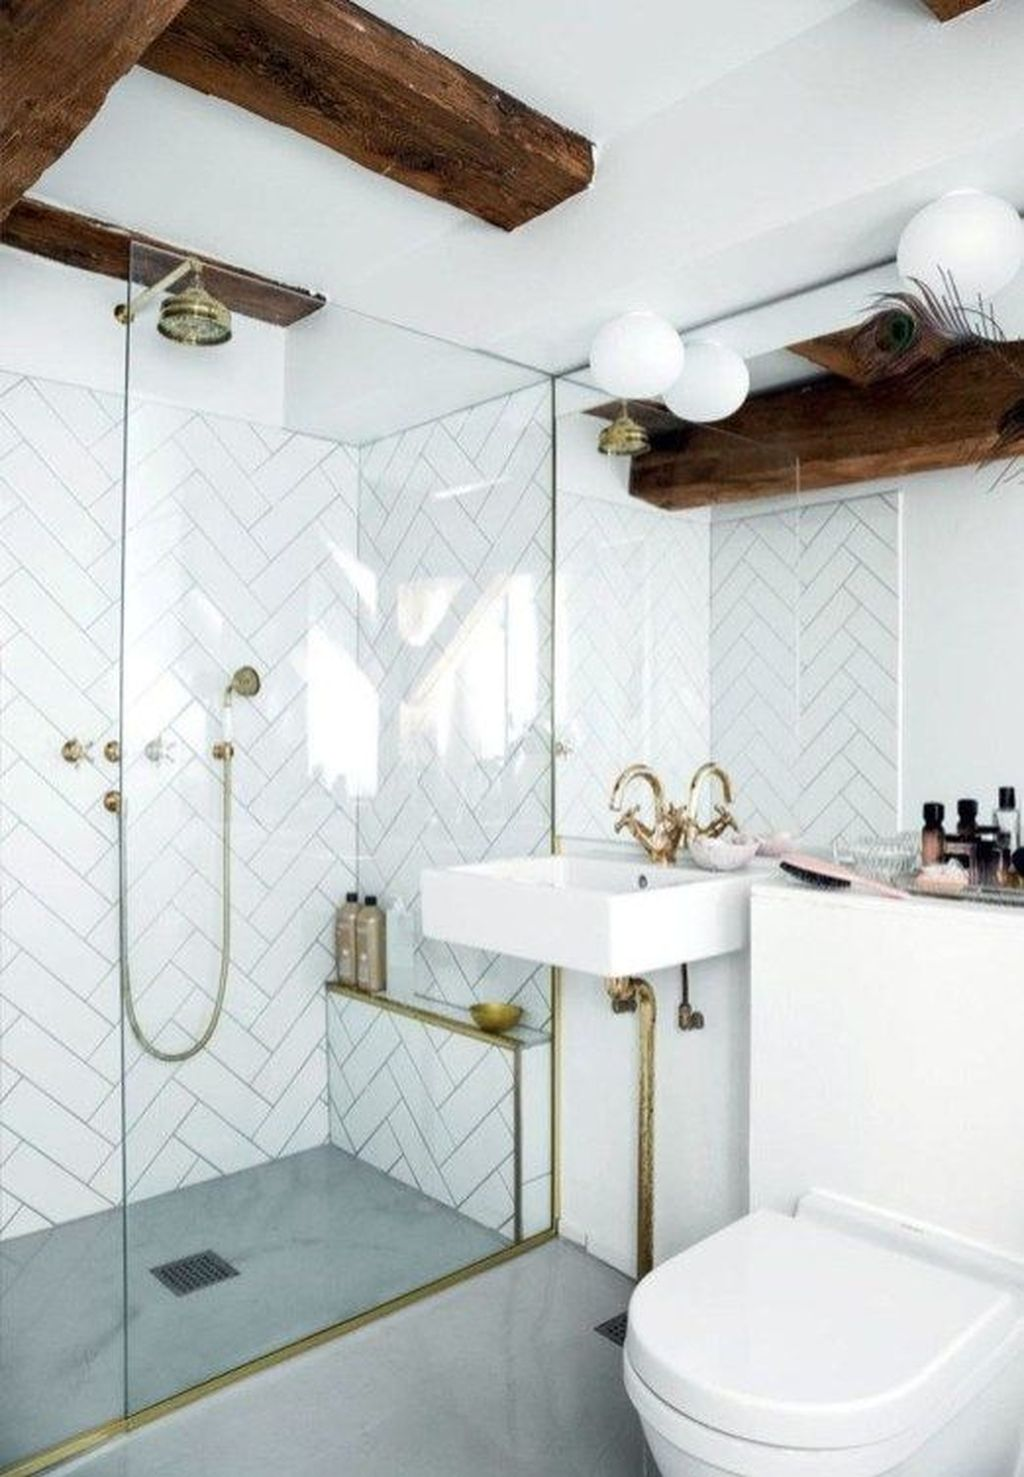 The Best Stone Tile Bathroom Ideas To Decorate Your Bathroom 15